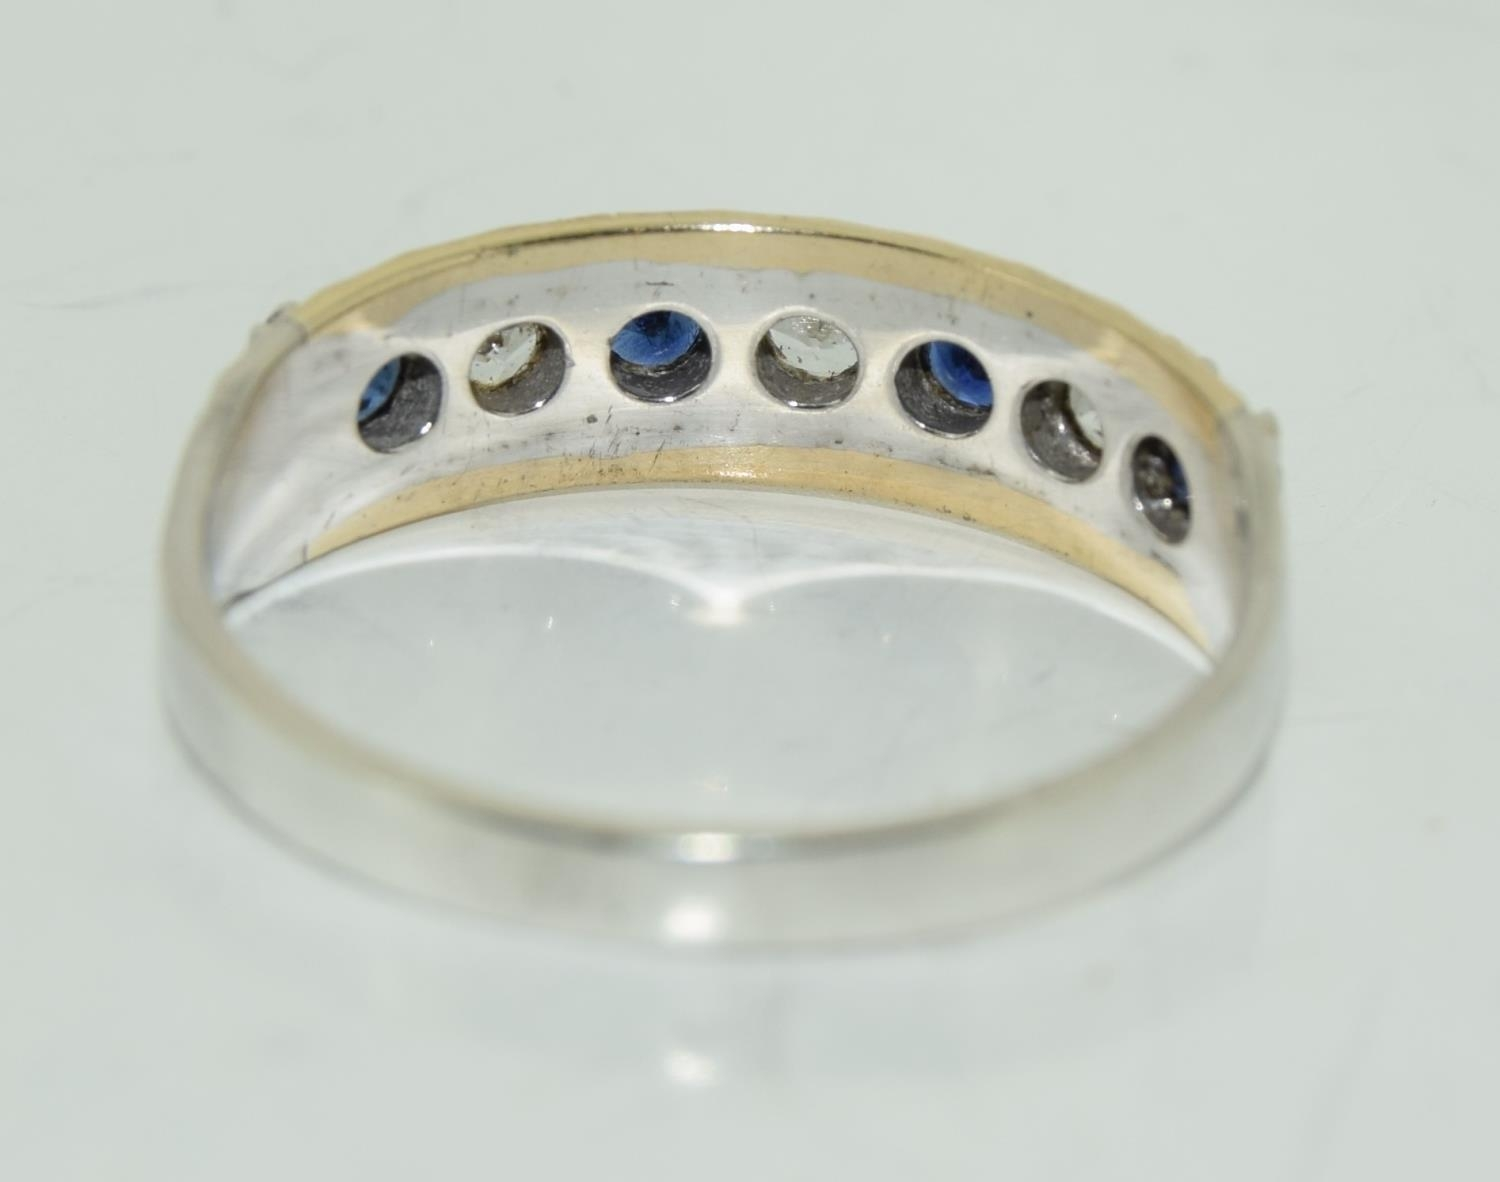 Antique Sapphire 9ct and silver eternity ring, Size M. - Image 3 of 3